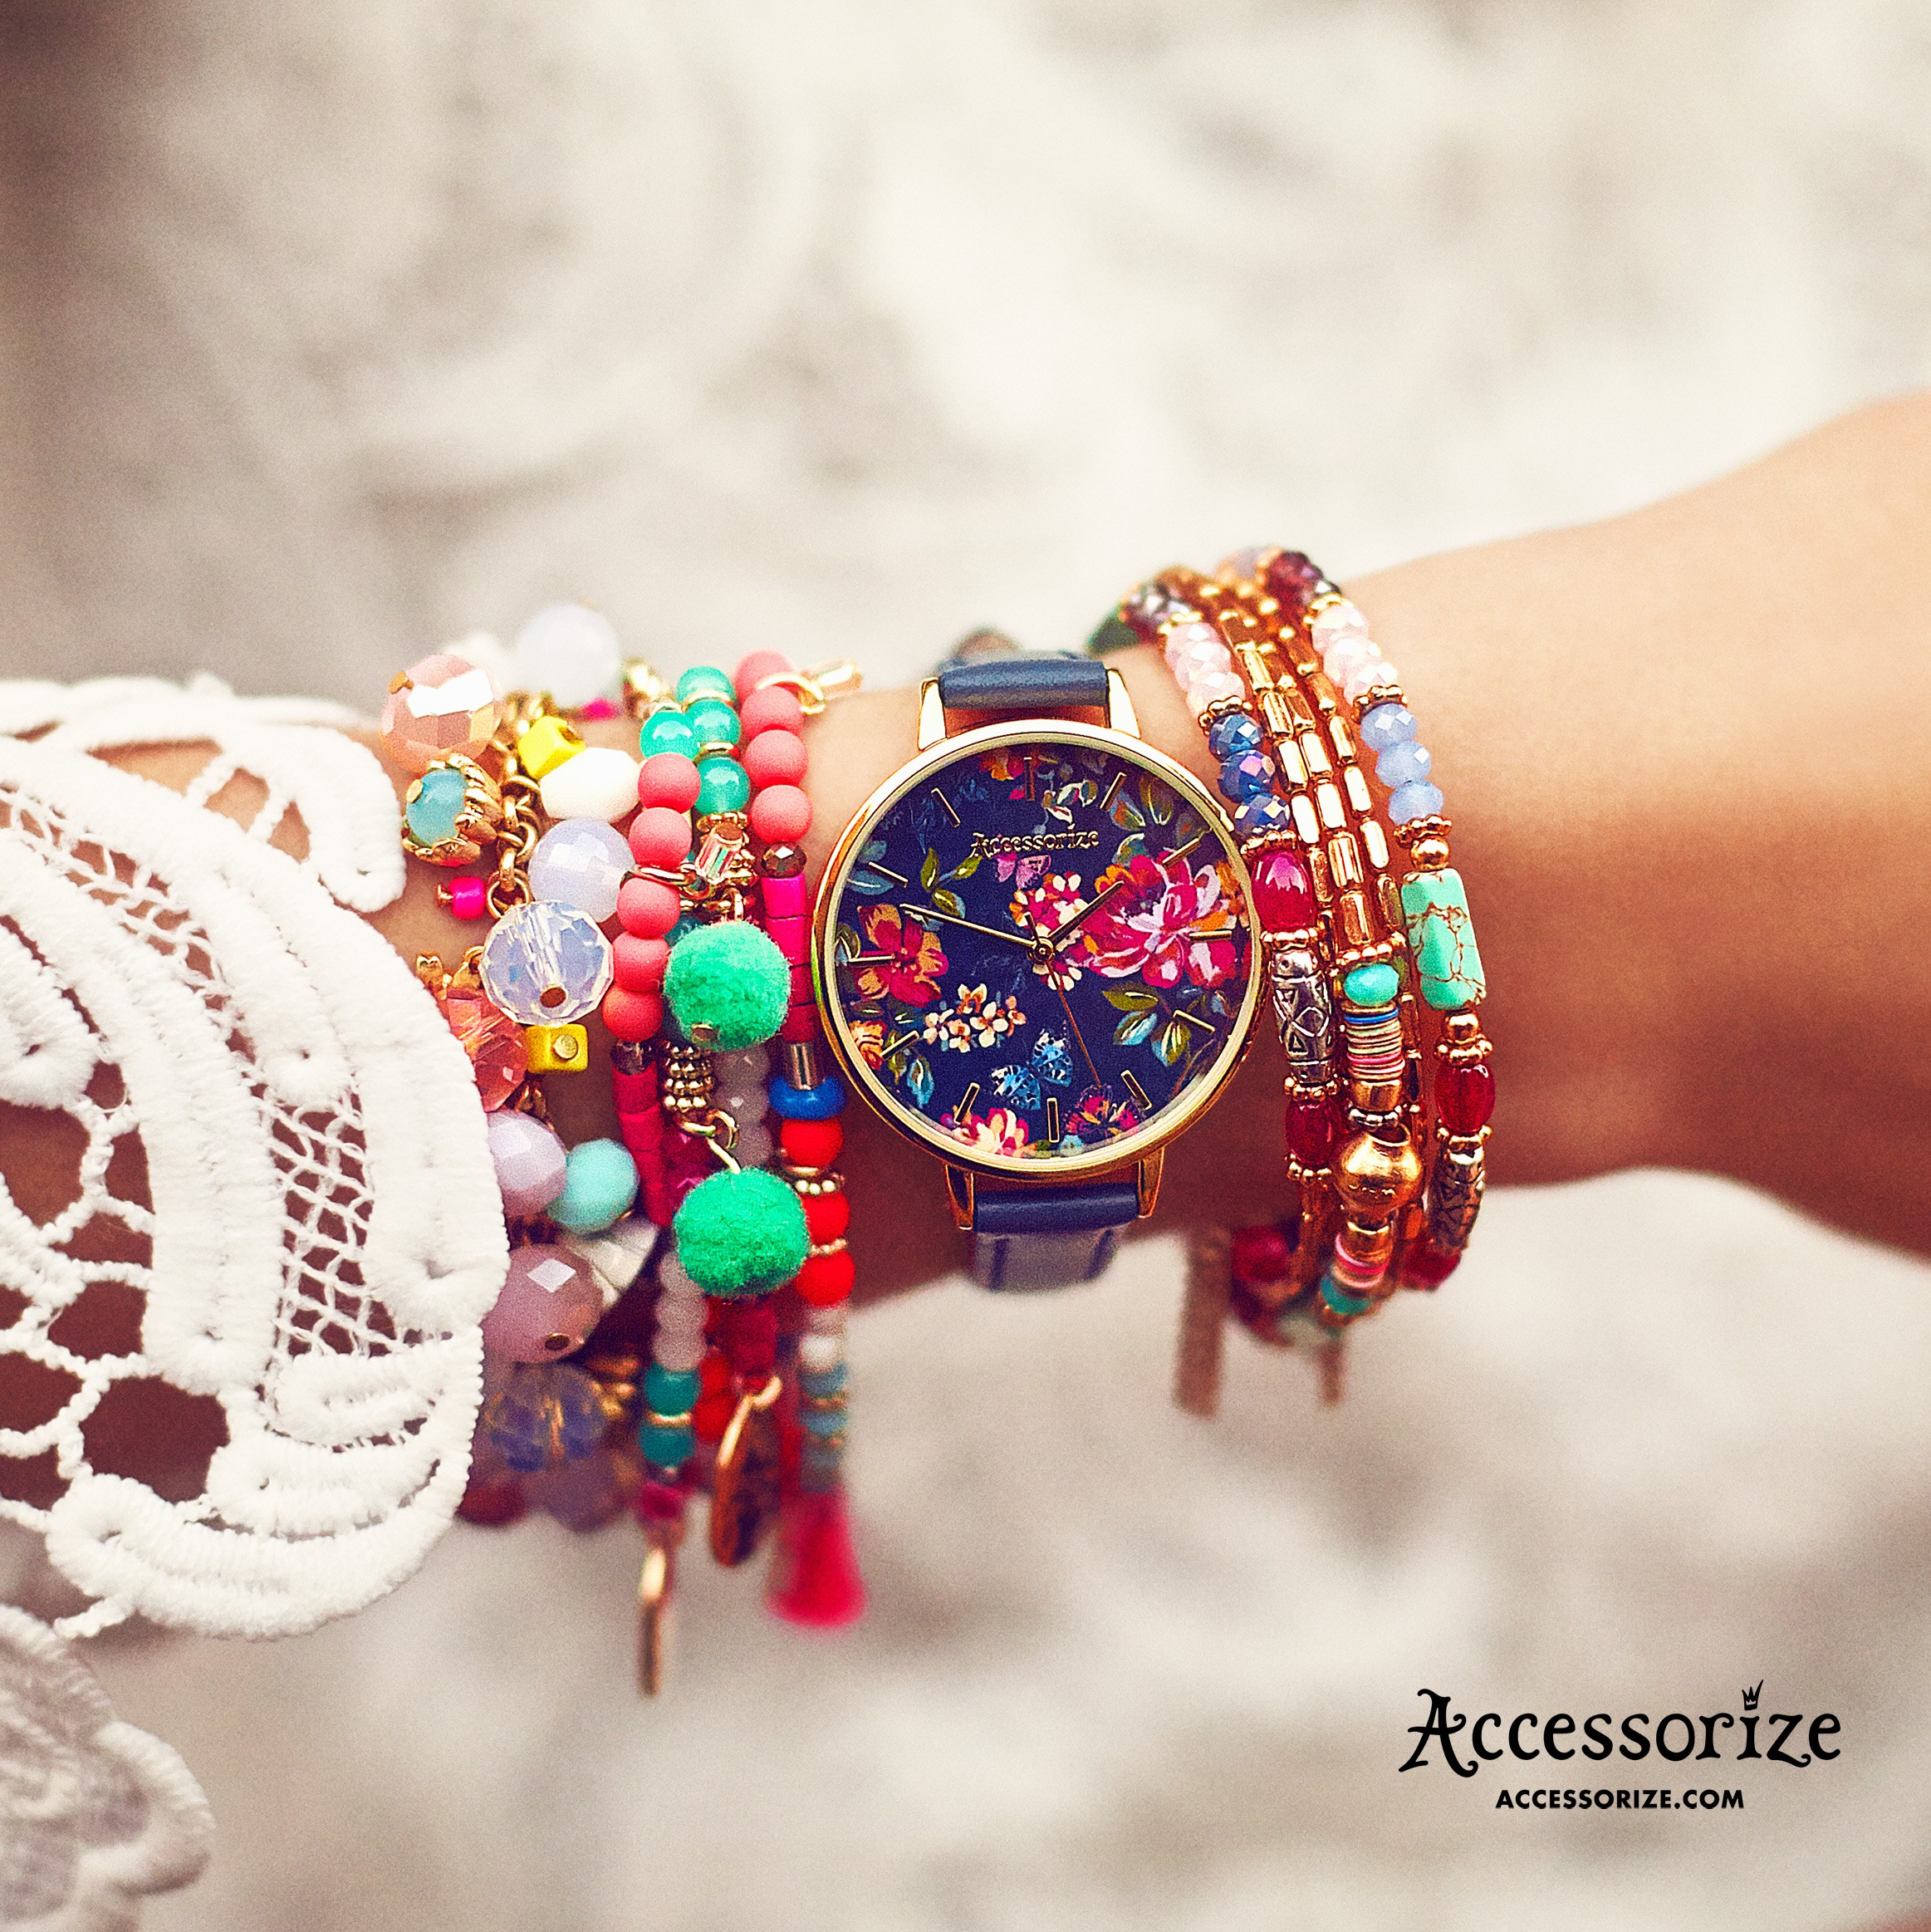 accessorize-campaign-shoes-still-life-watches-sunshine-summer-ruth-rose-6.jpg